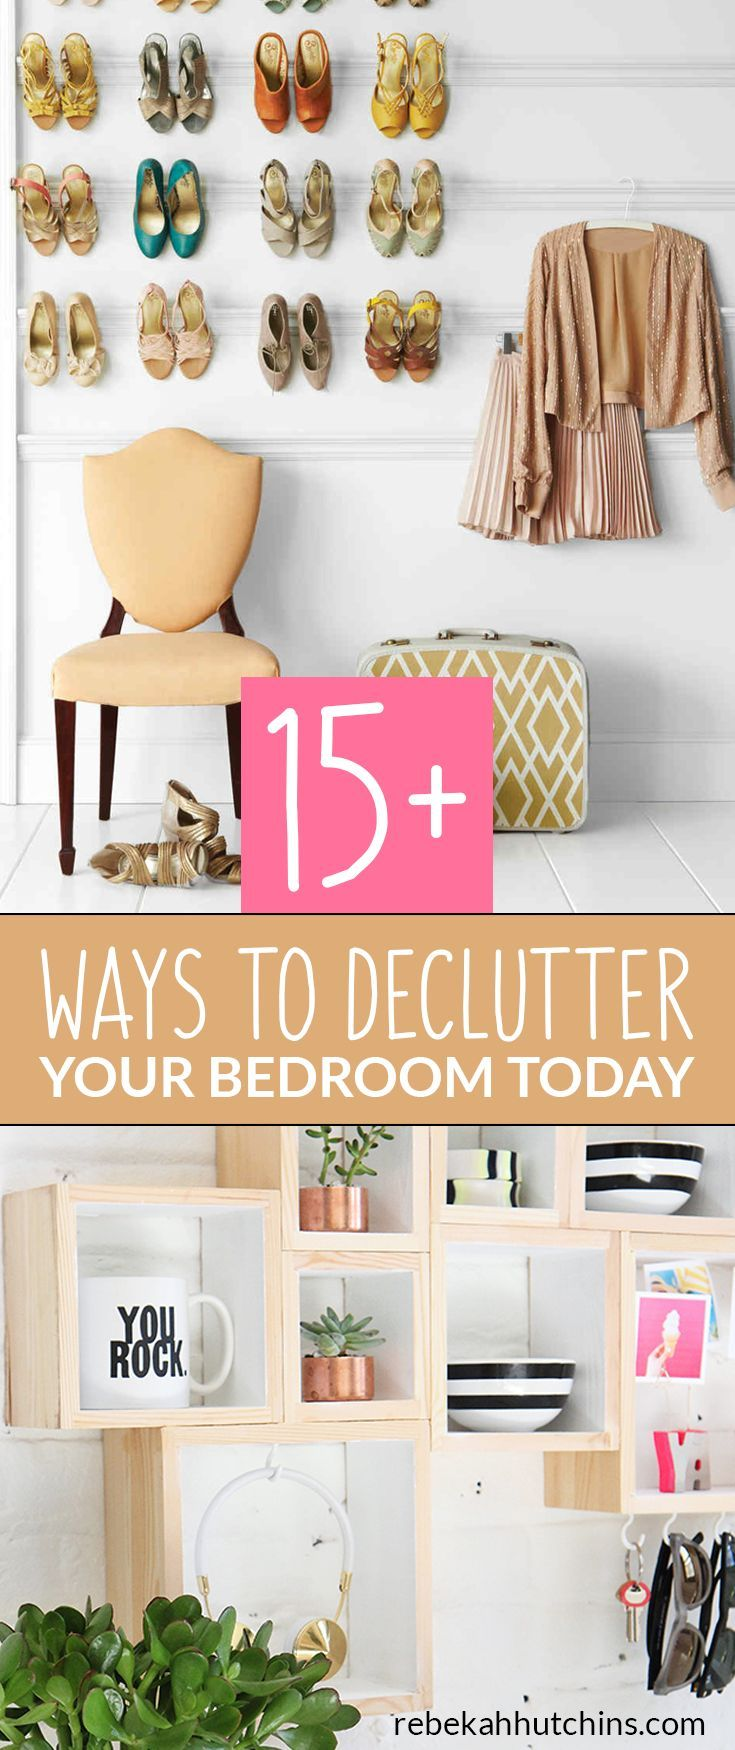 16 Bedroom Organization Ideas To Get The Most Out Of Your Small Space Organization Bedroom Organization Hacks Bedroom Bedroom Organization Diy